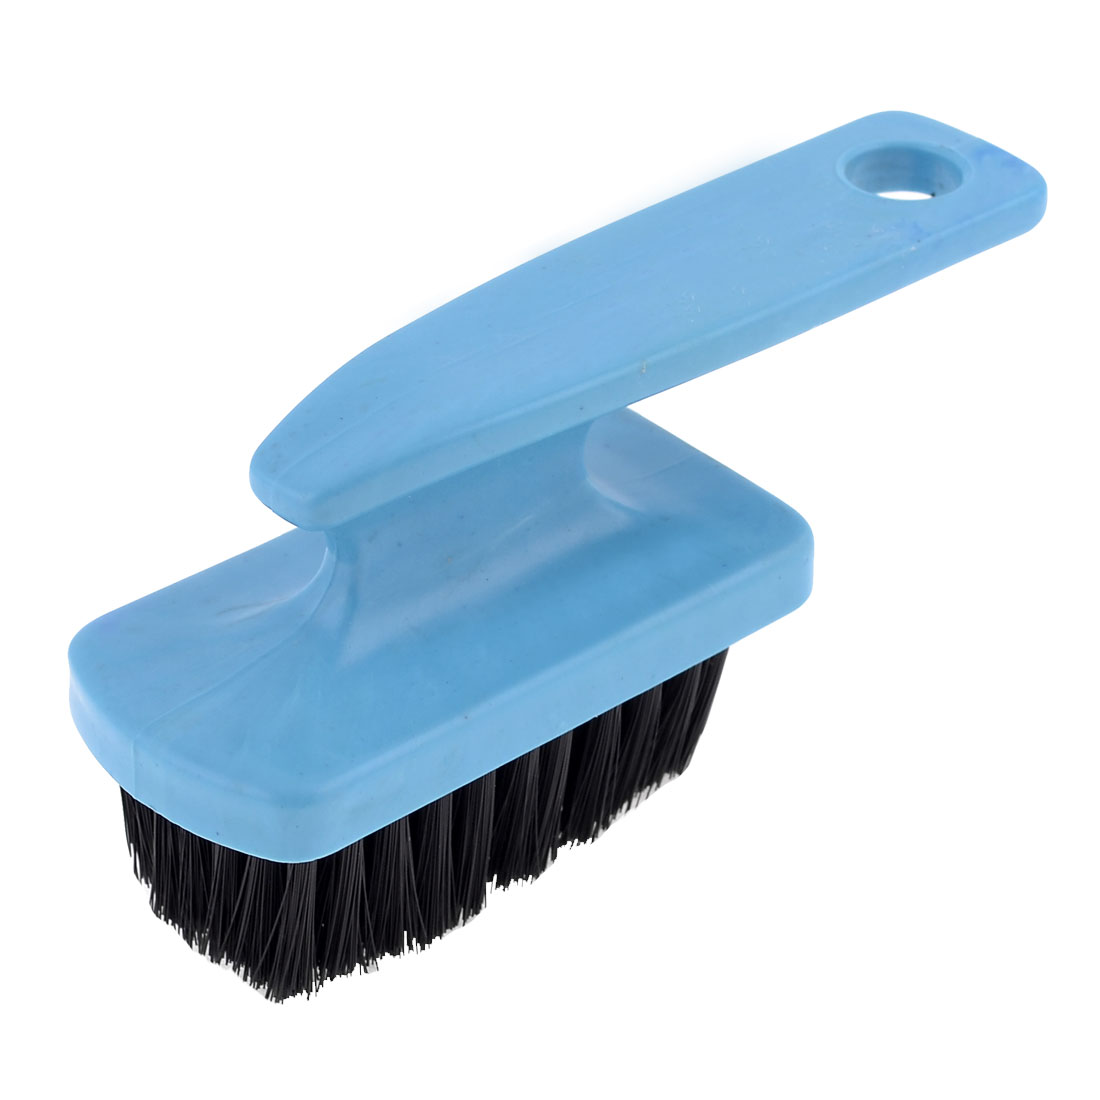 House Plastic Handgrip Shoes Scrub Mini Brush Cleaning Tool Blue